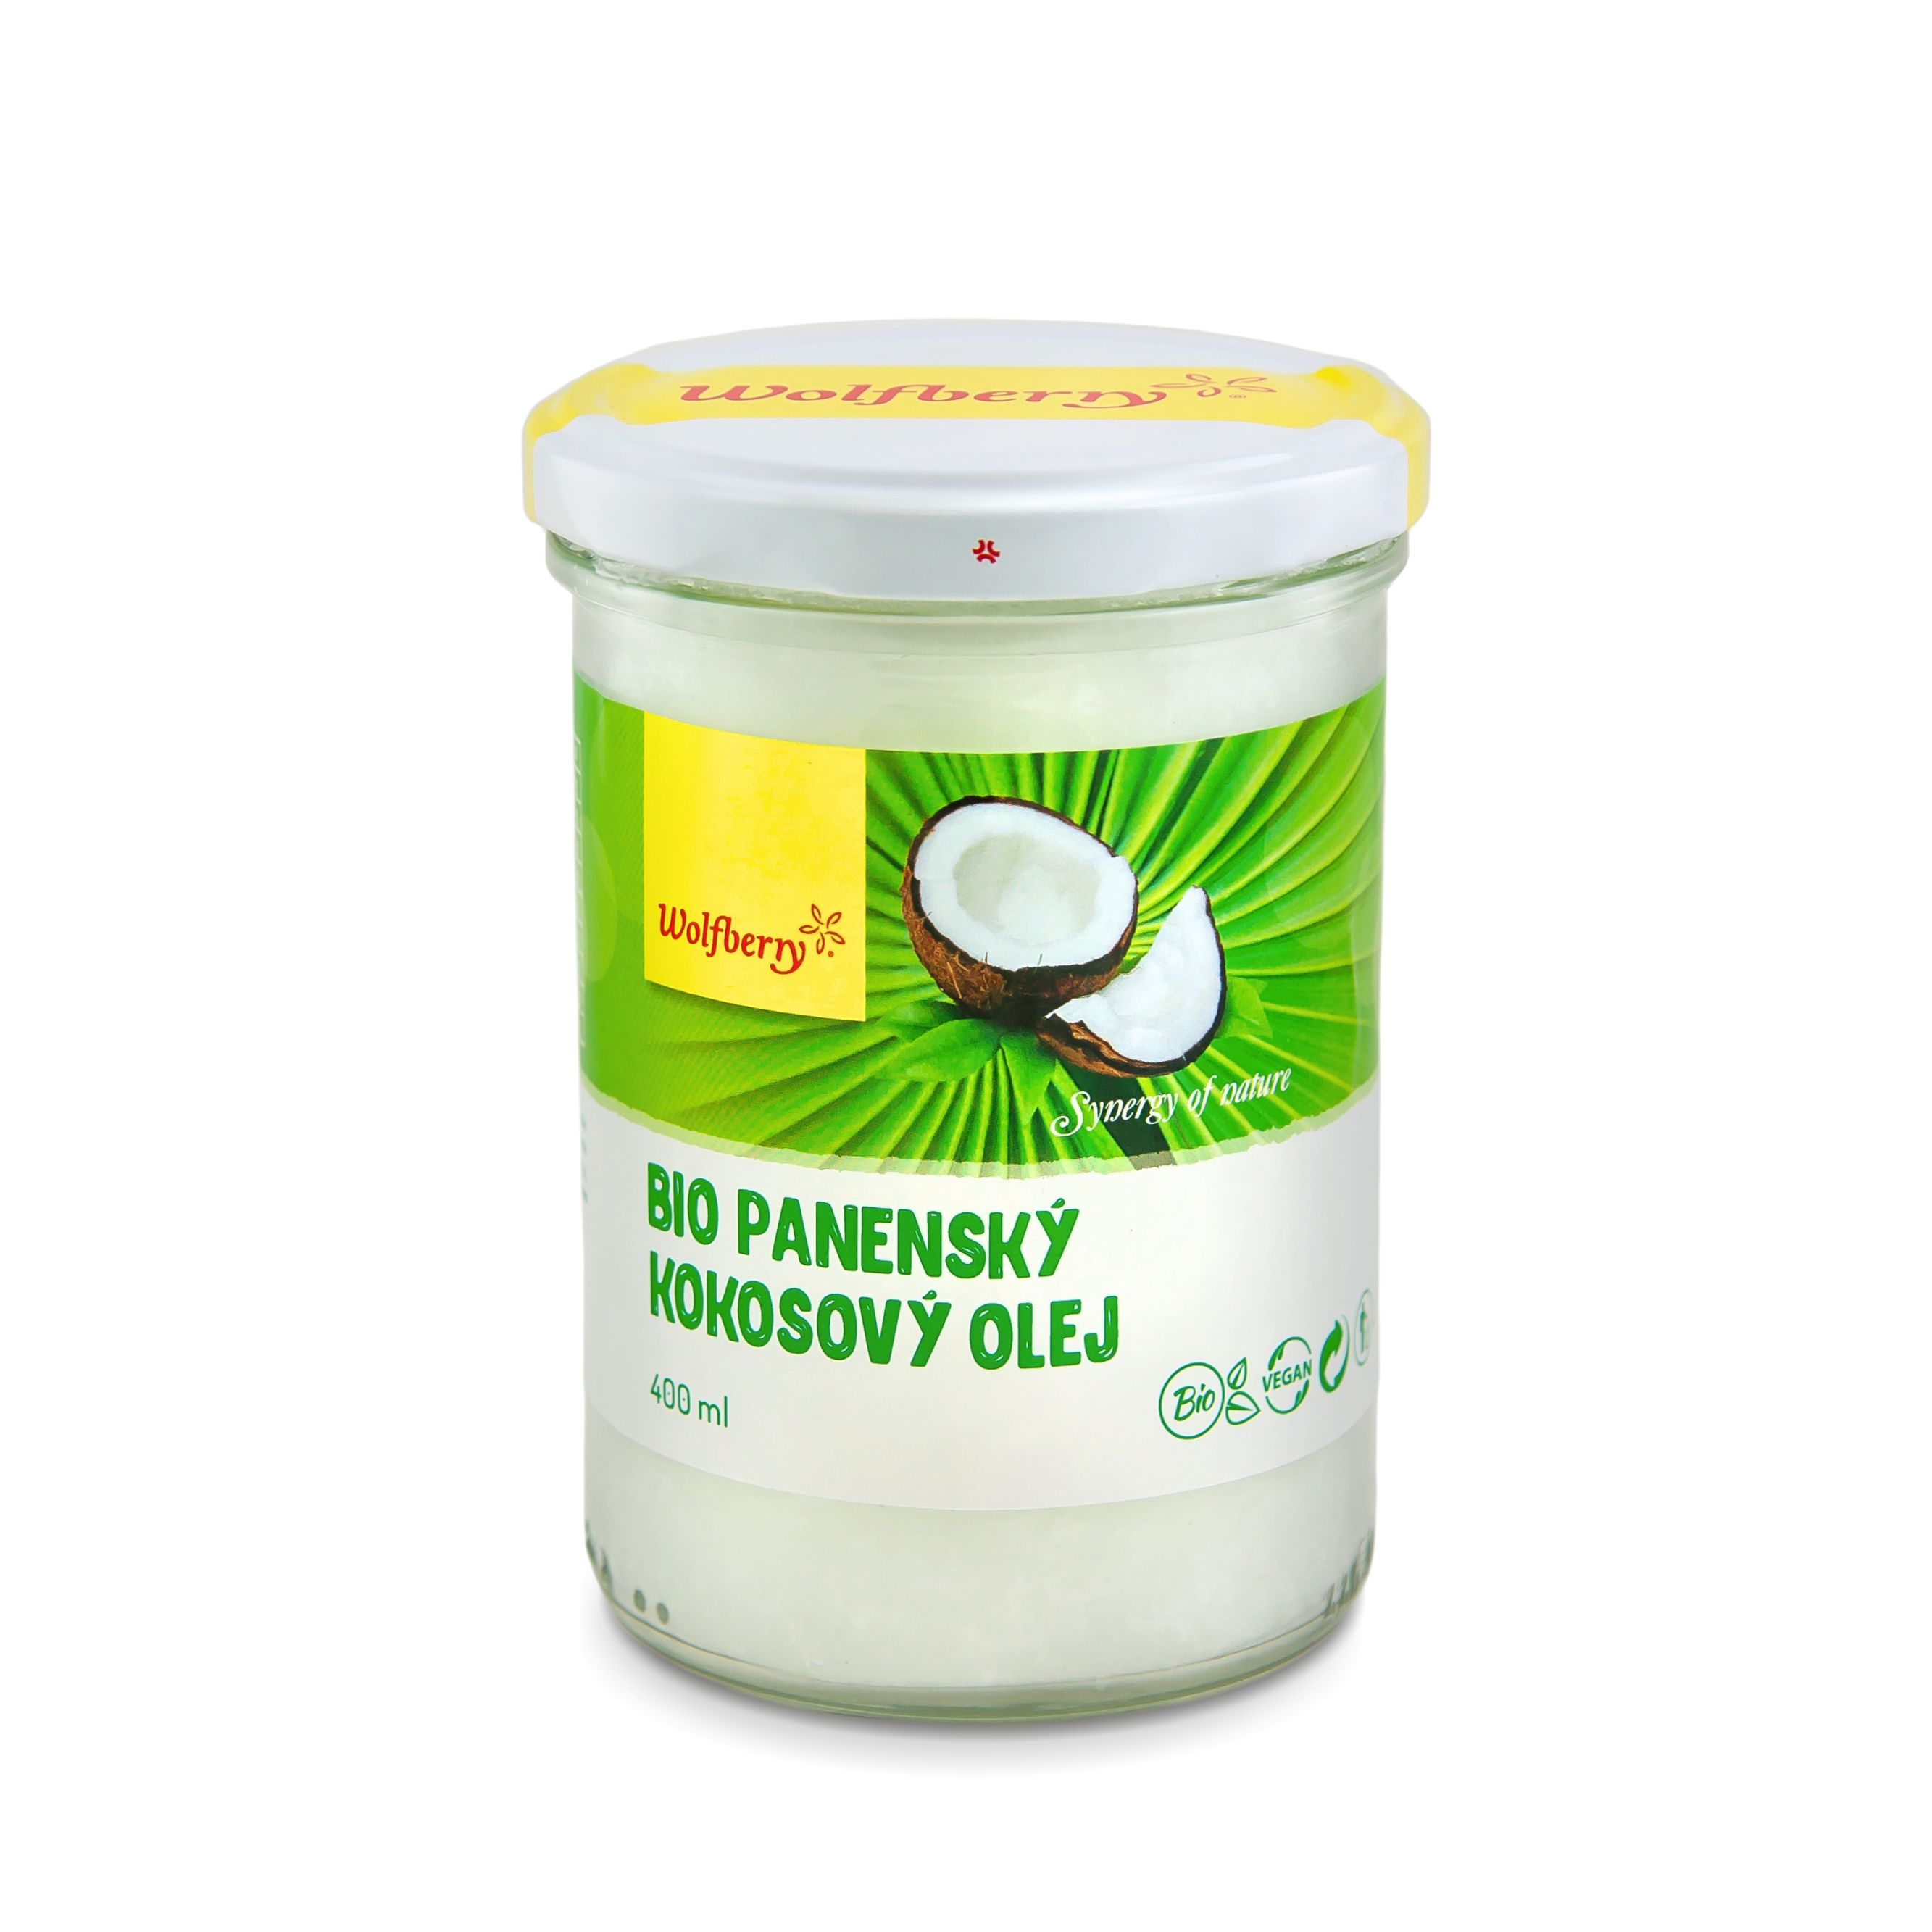 Wolfberry Panenský kokosový olej BIO 400 ml Wolfberry * 400ml